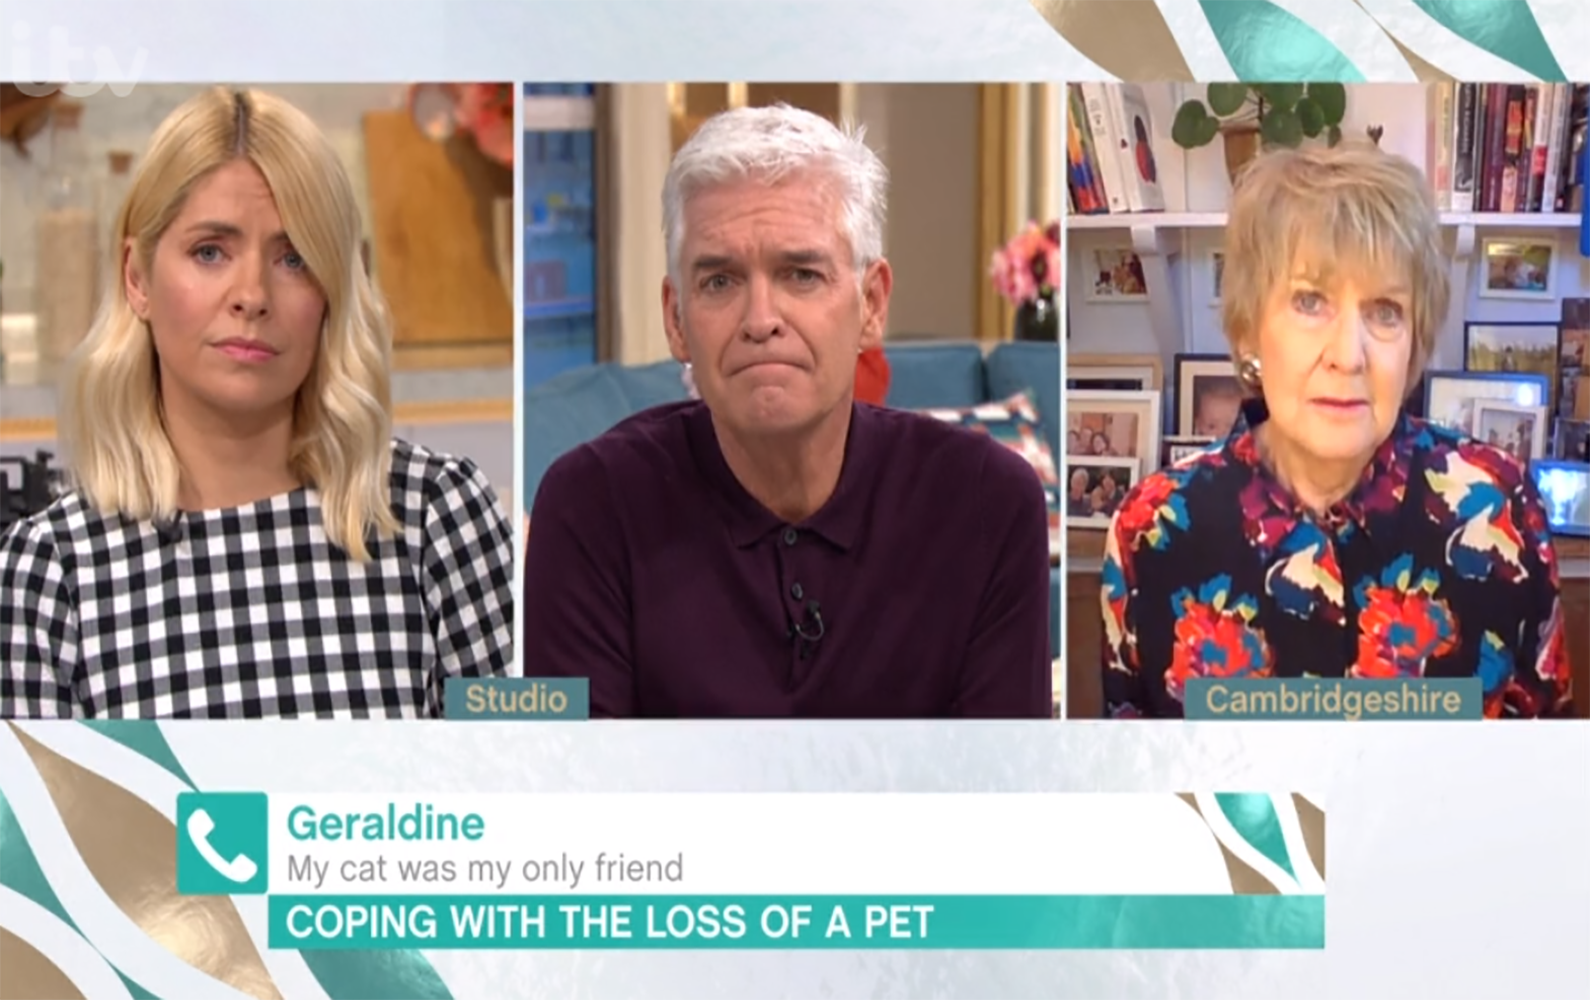 This Morning viewers in tears as elderly woman cries over losing her beloved cat